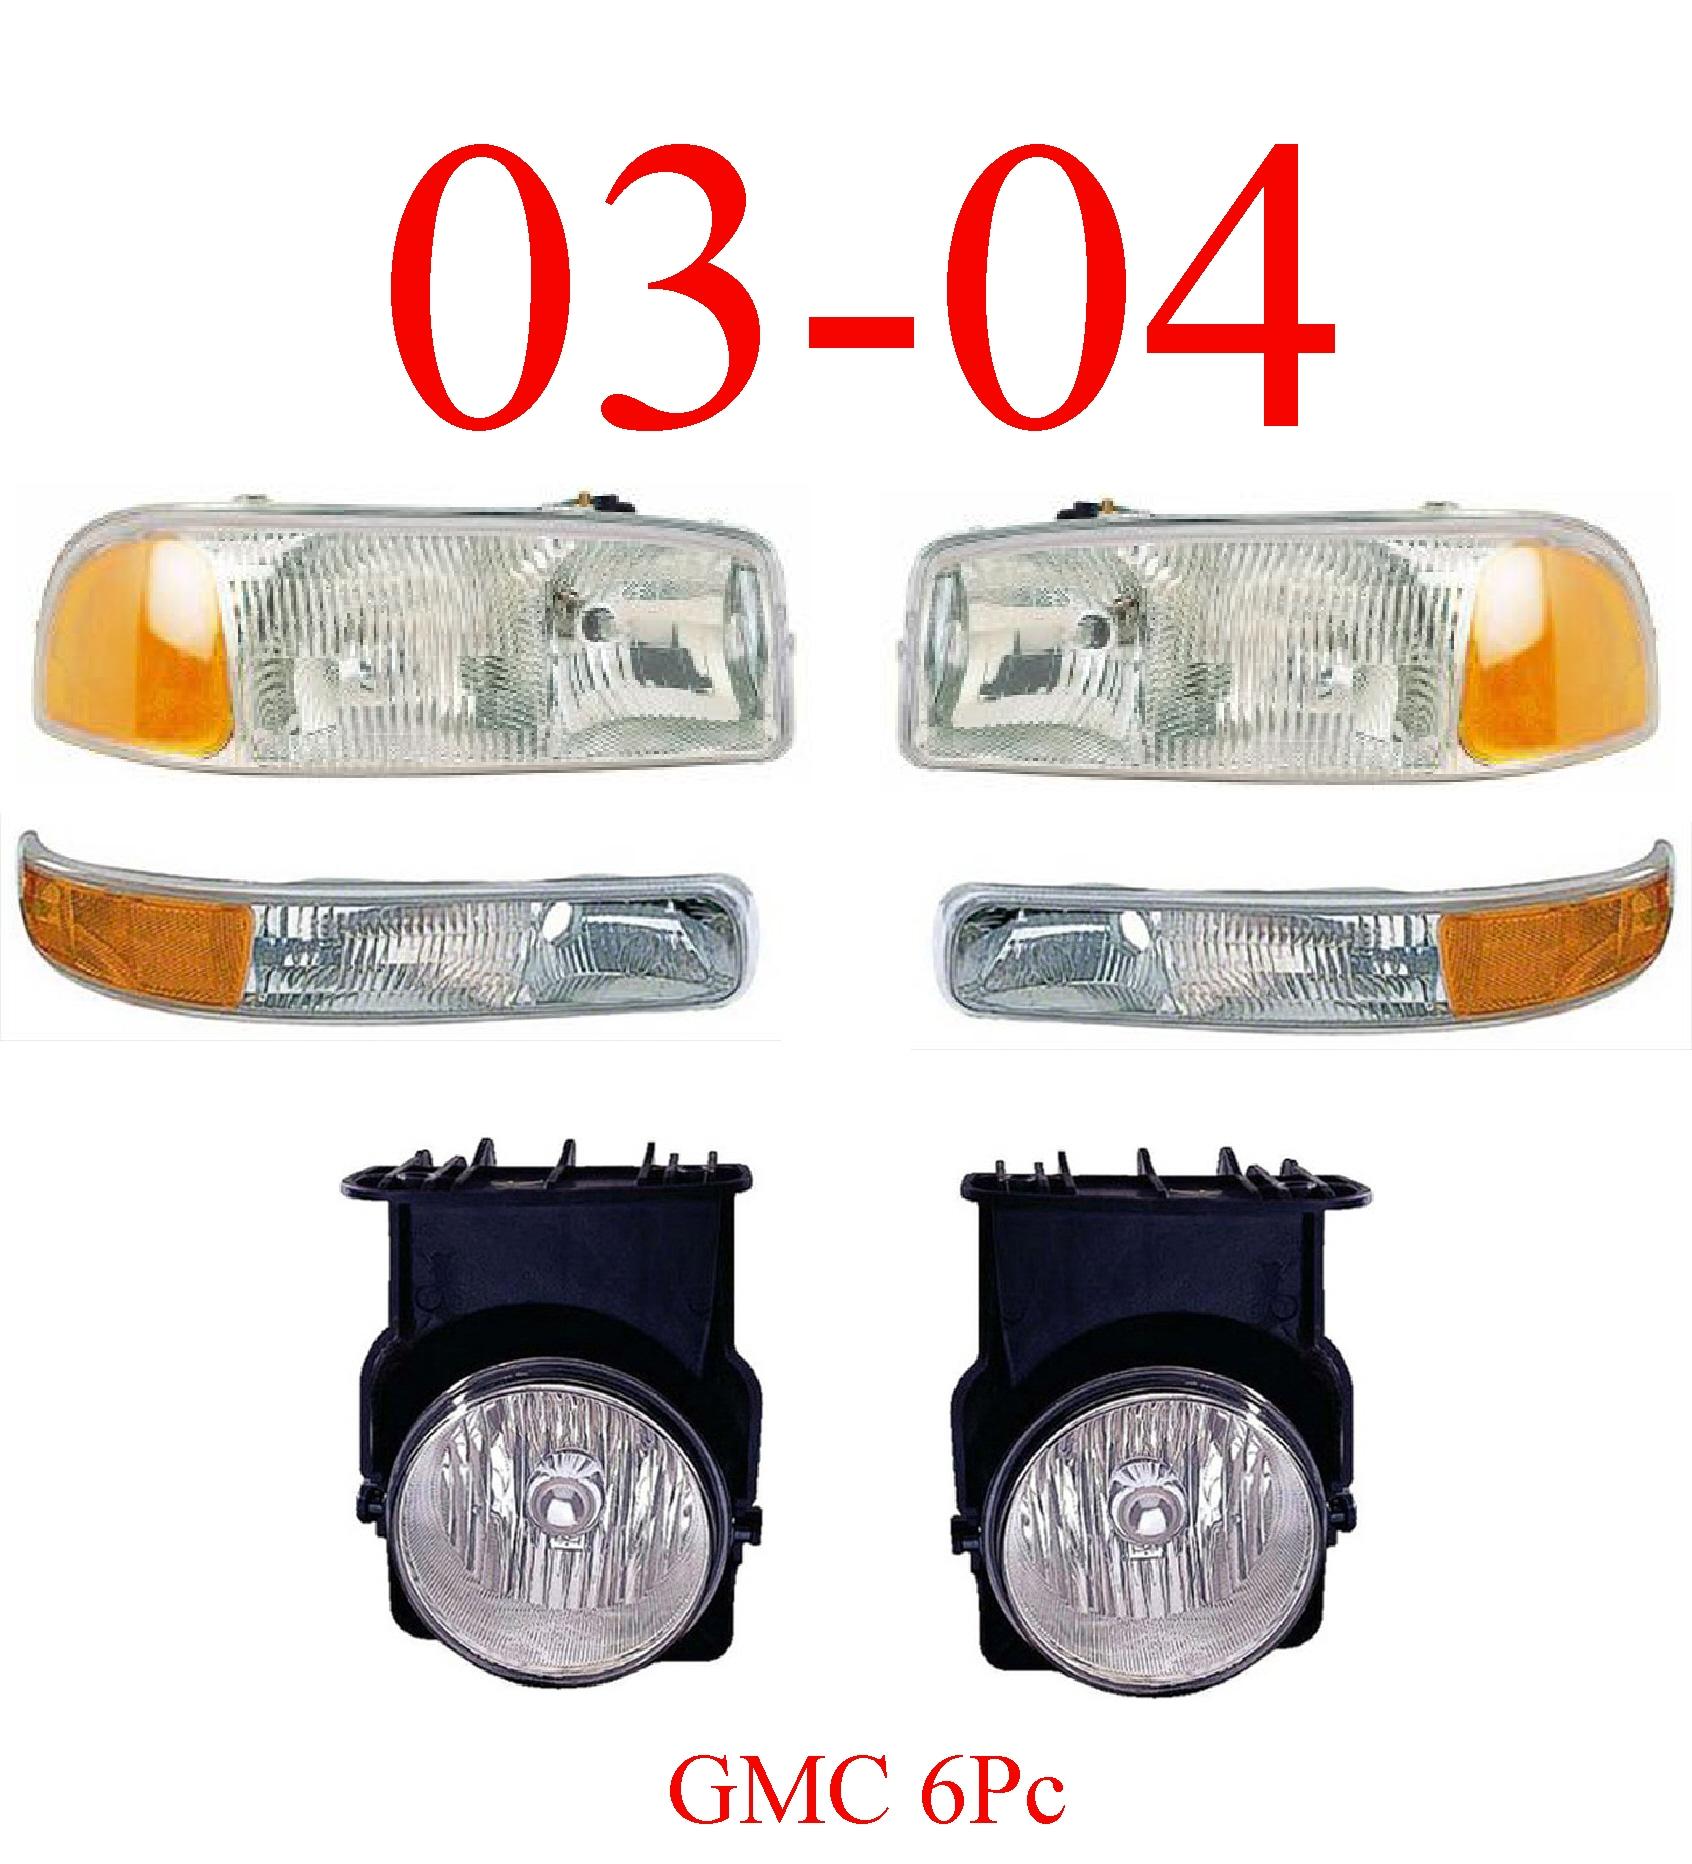 03-04 GMC Truck 6Pc Head, Park & Fog Light Assembly